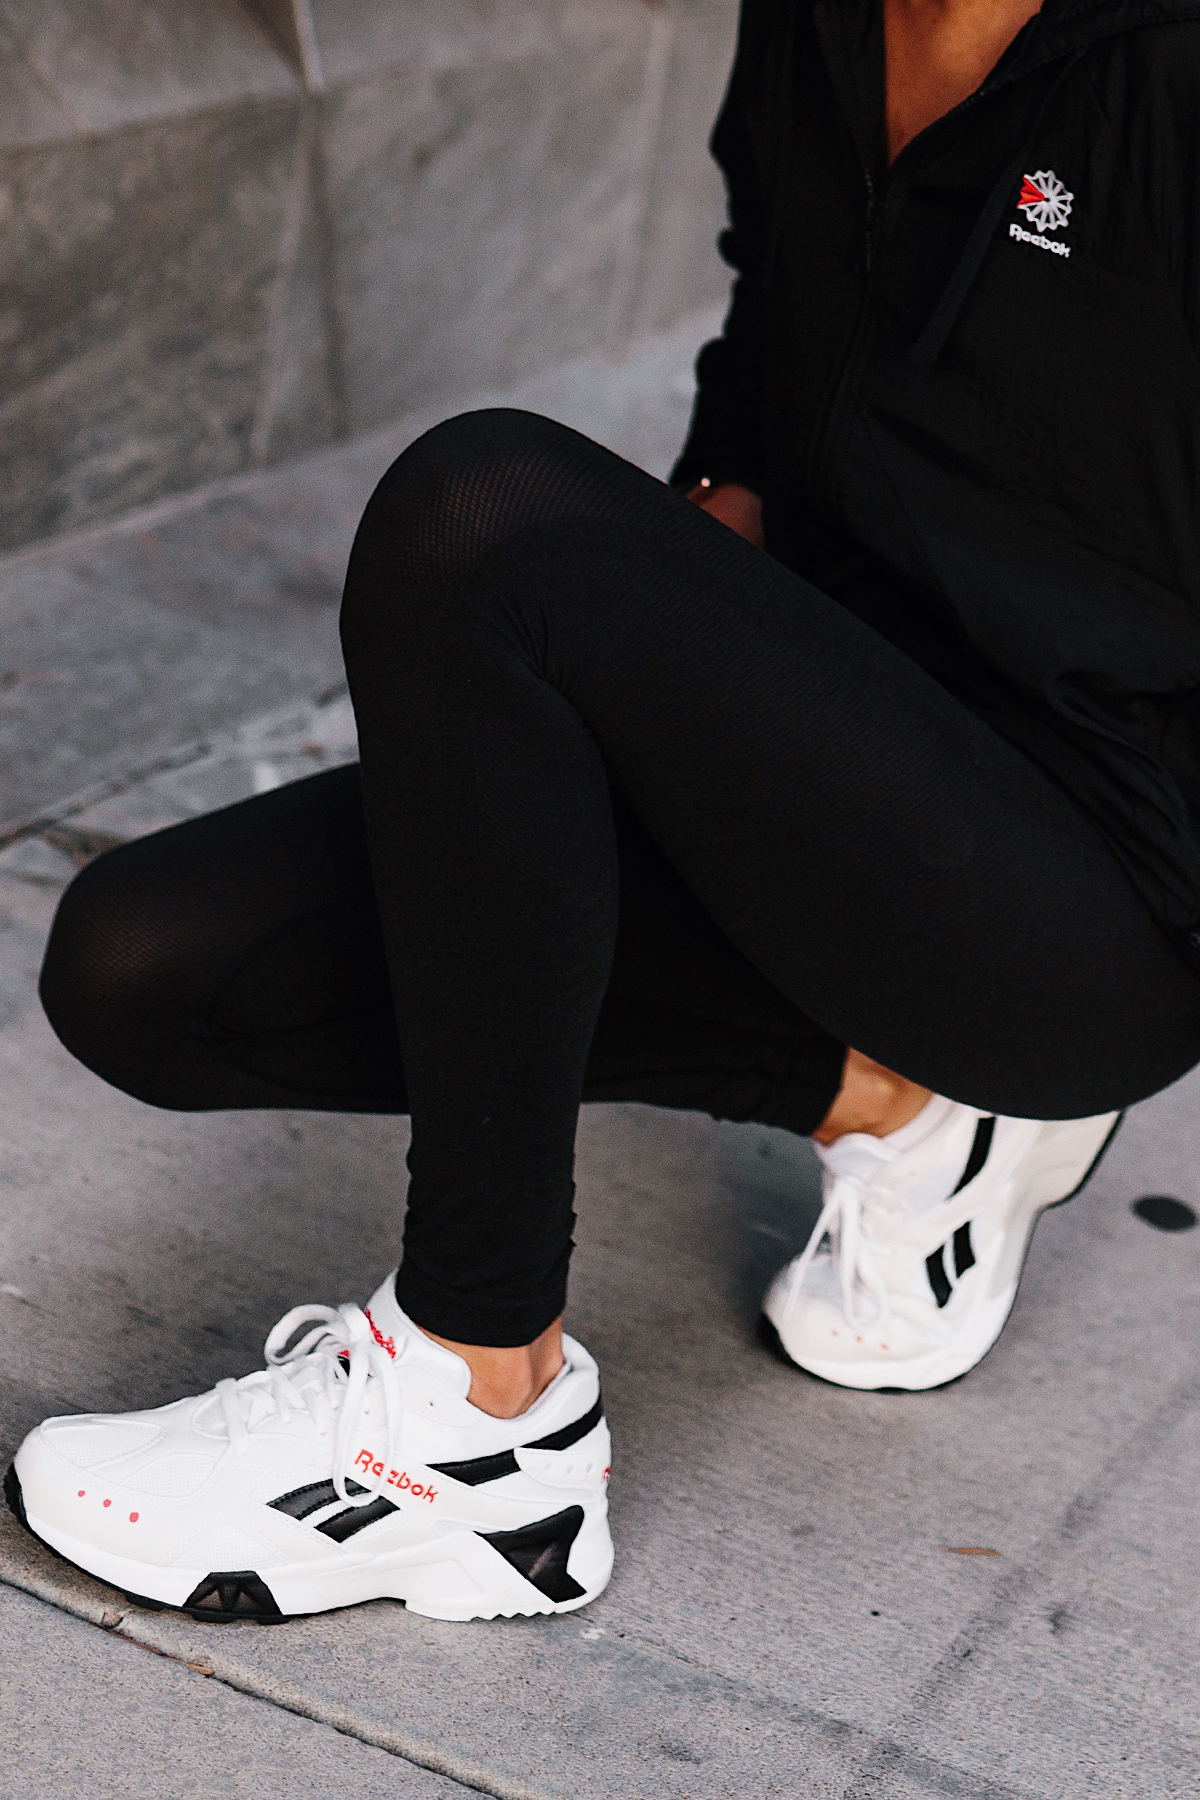 Woman Wearing Reebok Black Windbreaker Reebok Black Leggings Reebok White Aztrek Sneakers Fashion Jackson San Diego Fashion Blogger Activewear Street Style